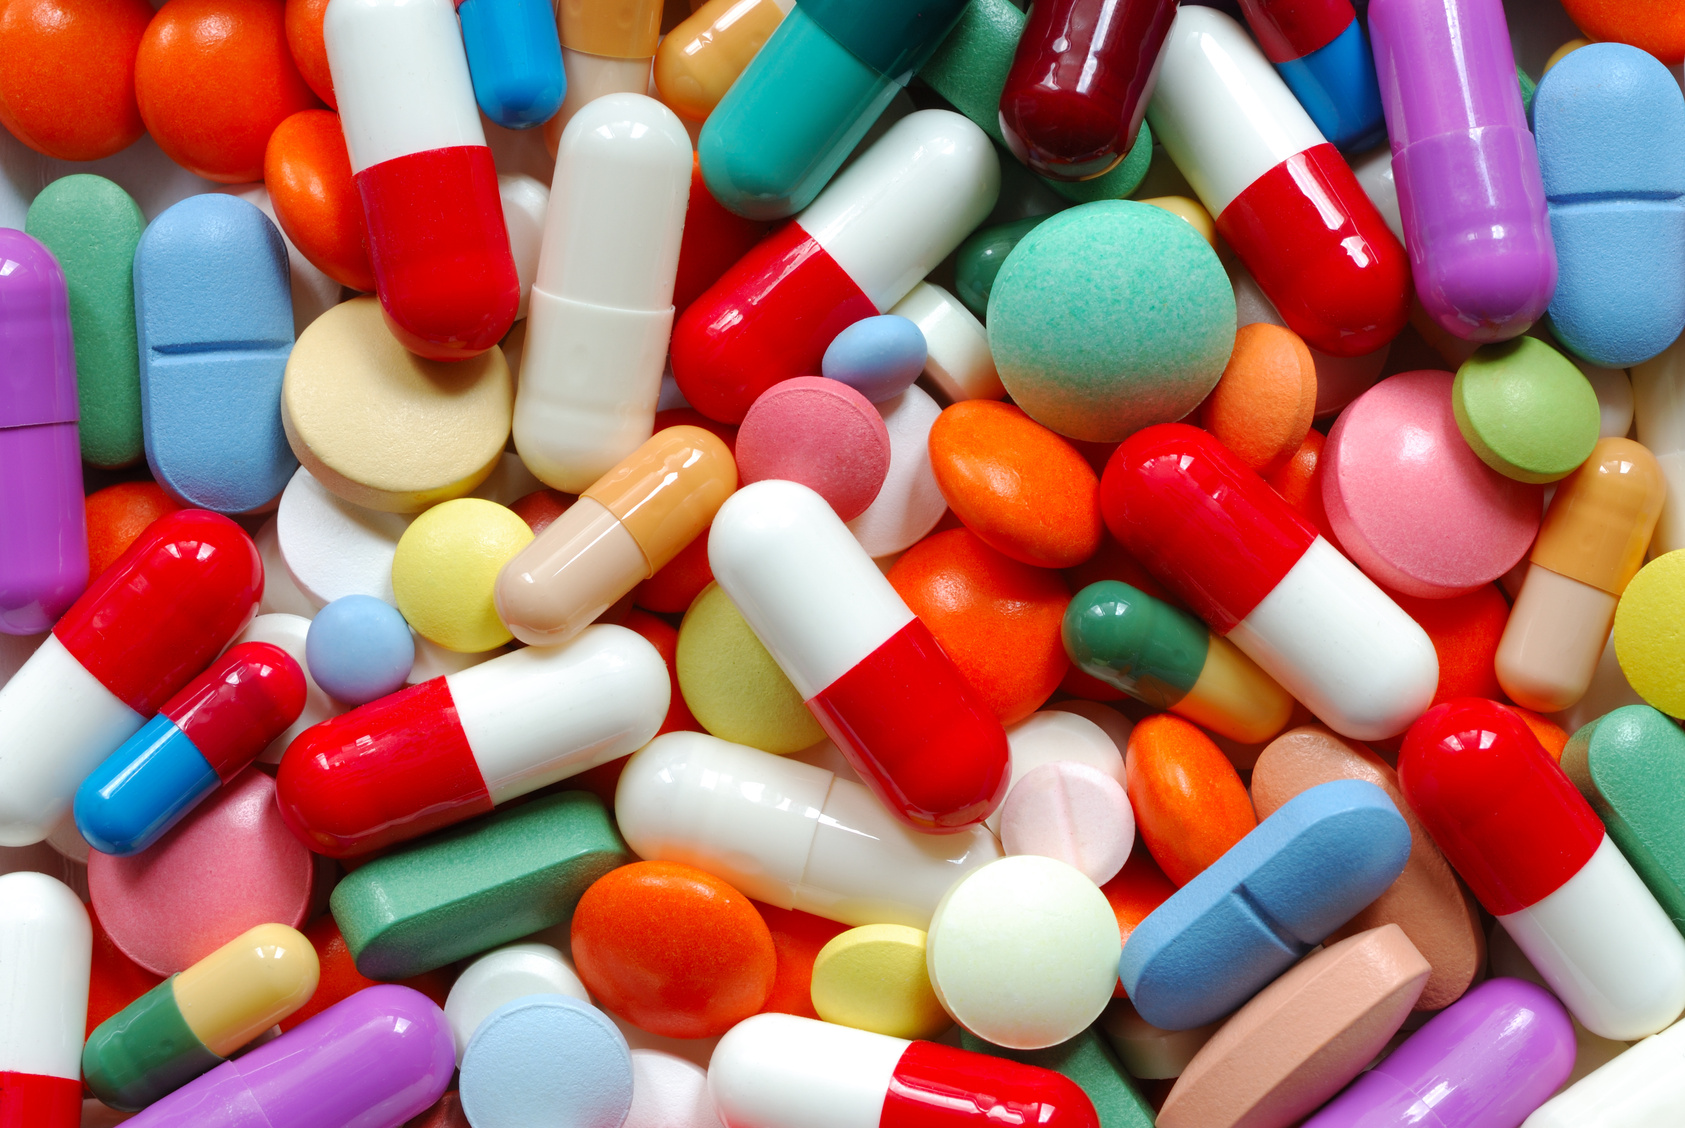 12 Side Effects When Using Antibiotics In The Long Term